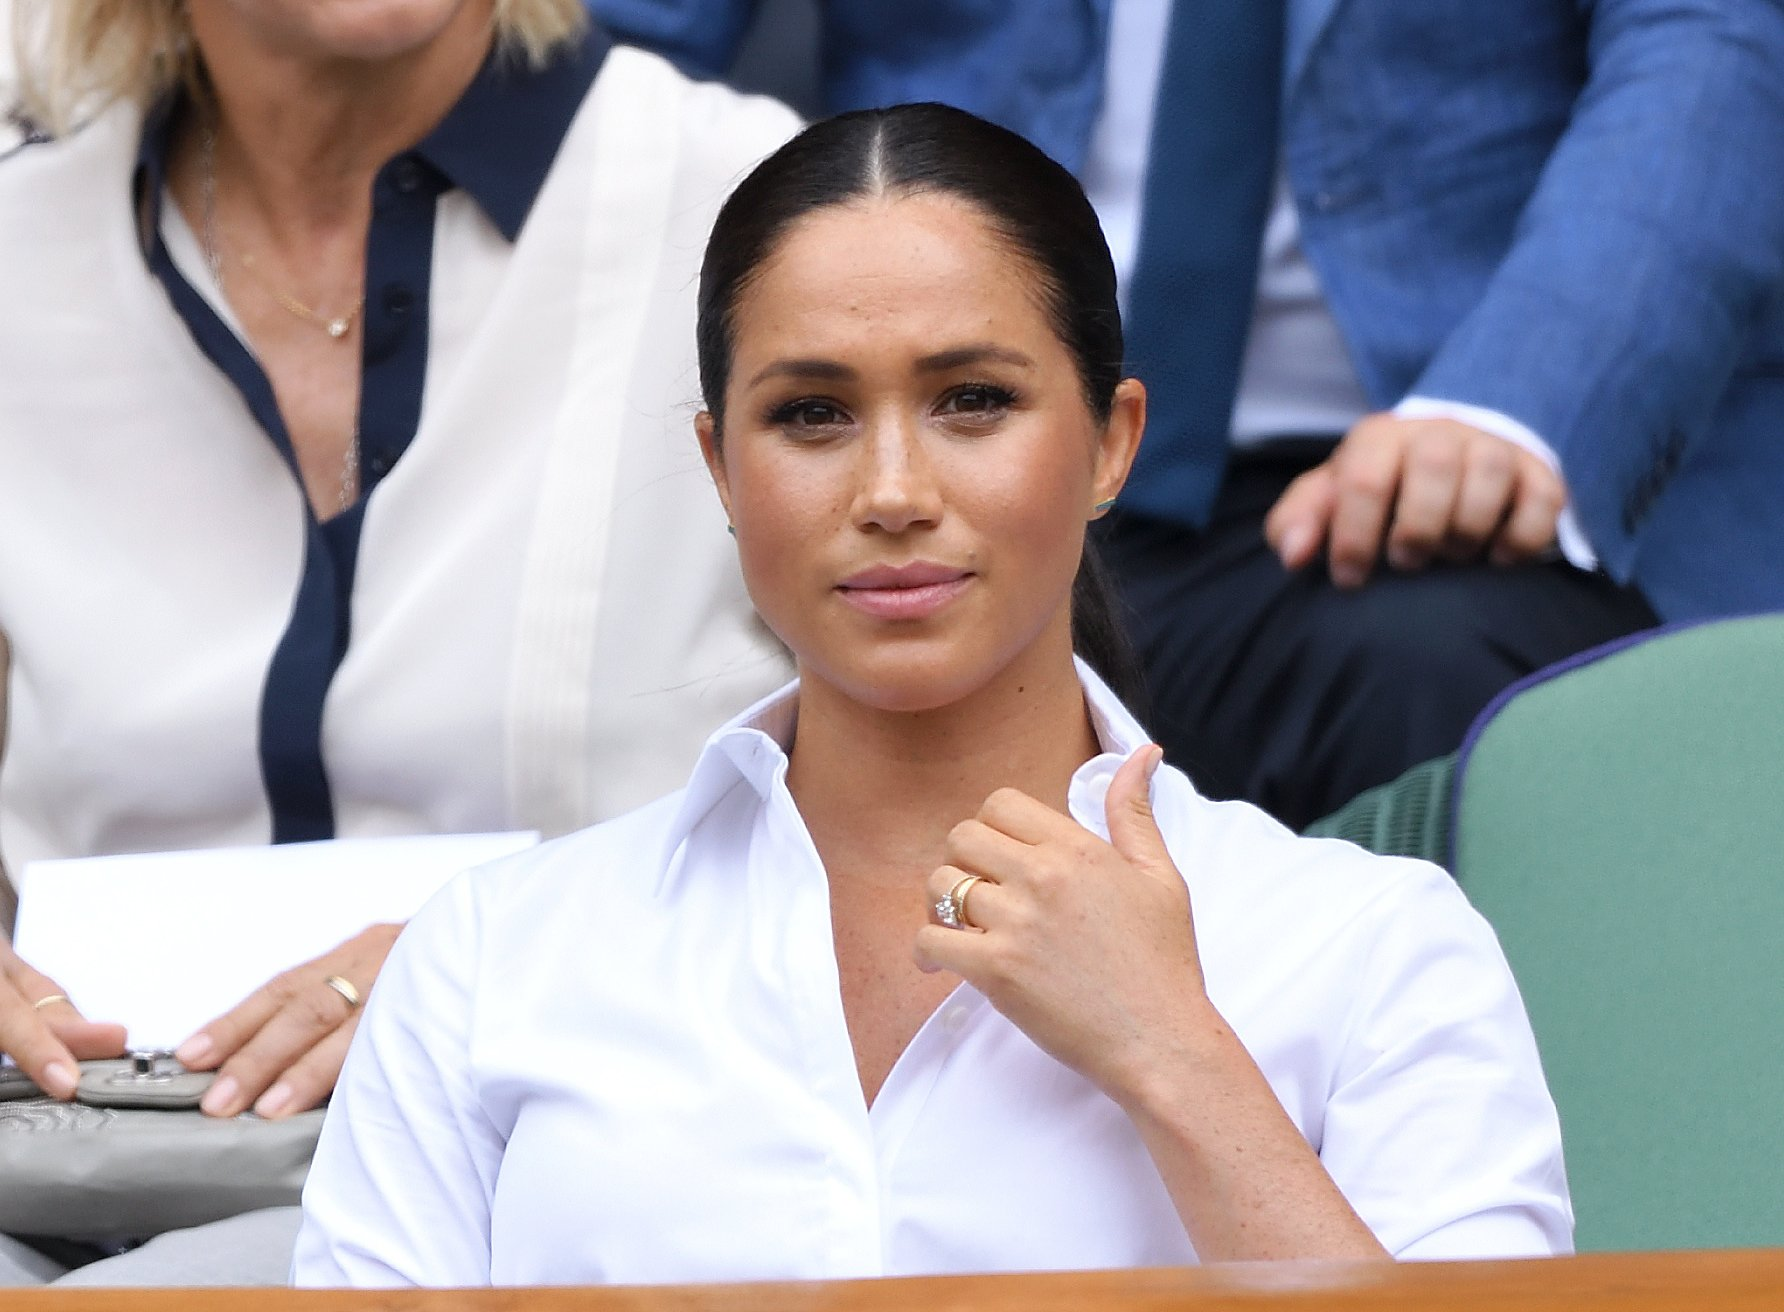 Meghan Markle attends a match for Wimbledon in July 2019 | Photo: Getty Images